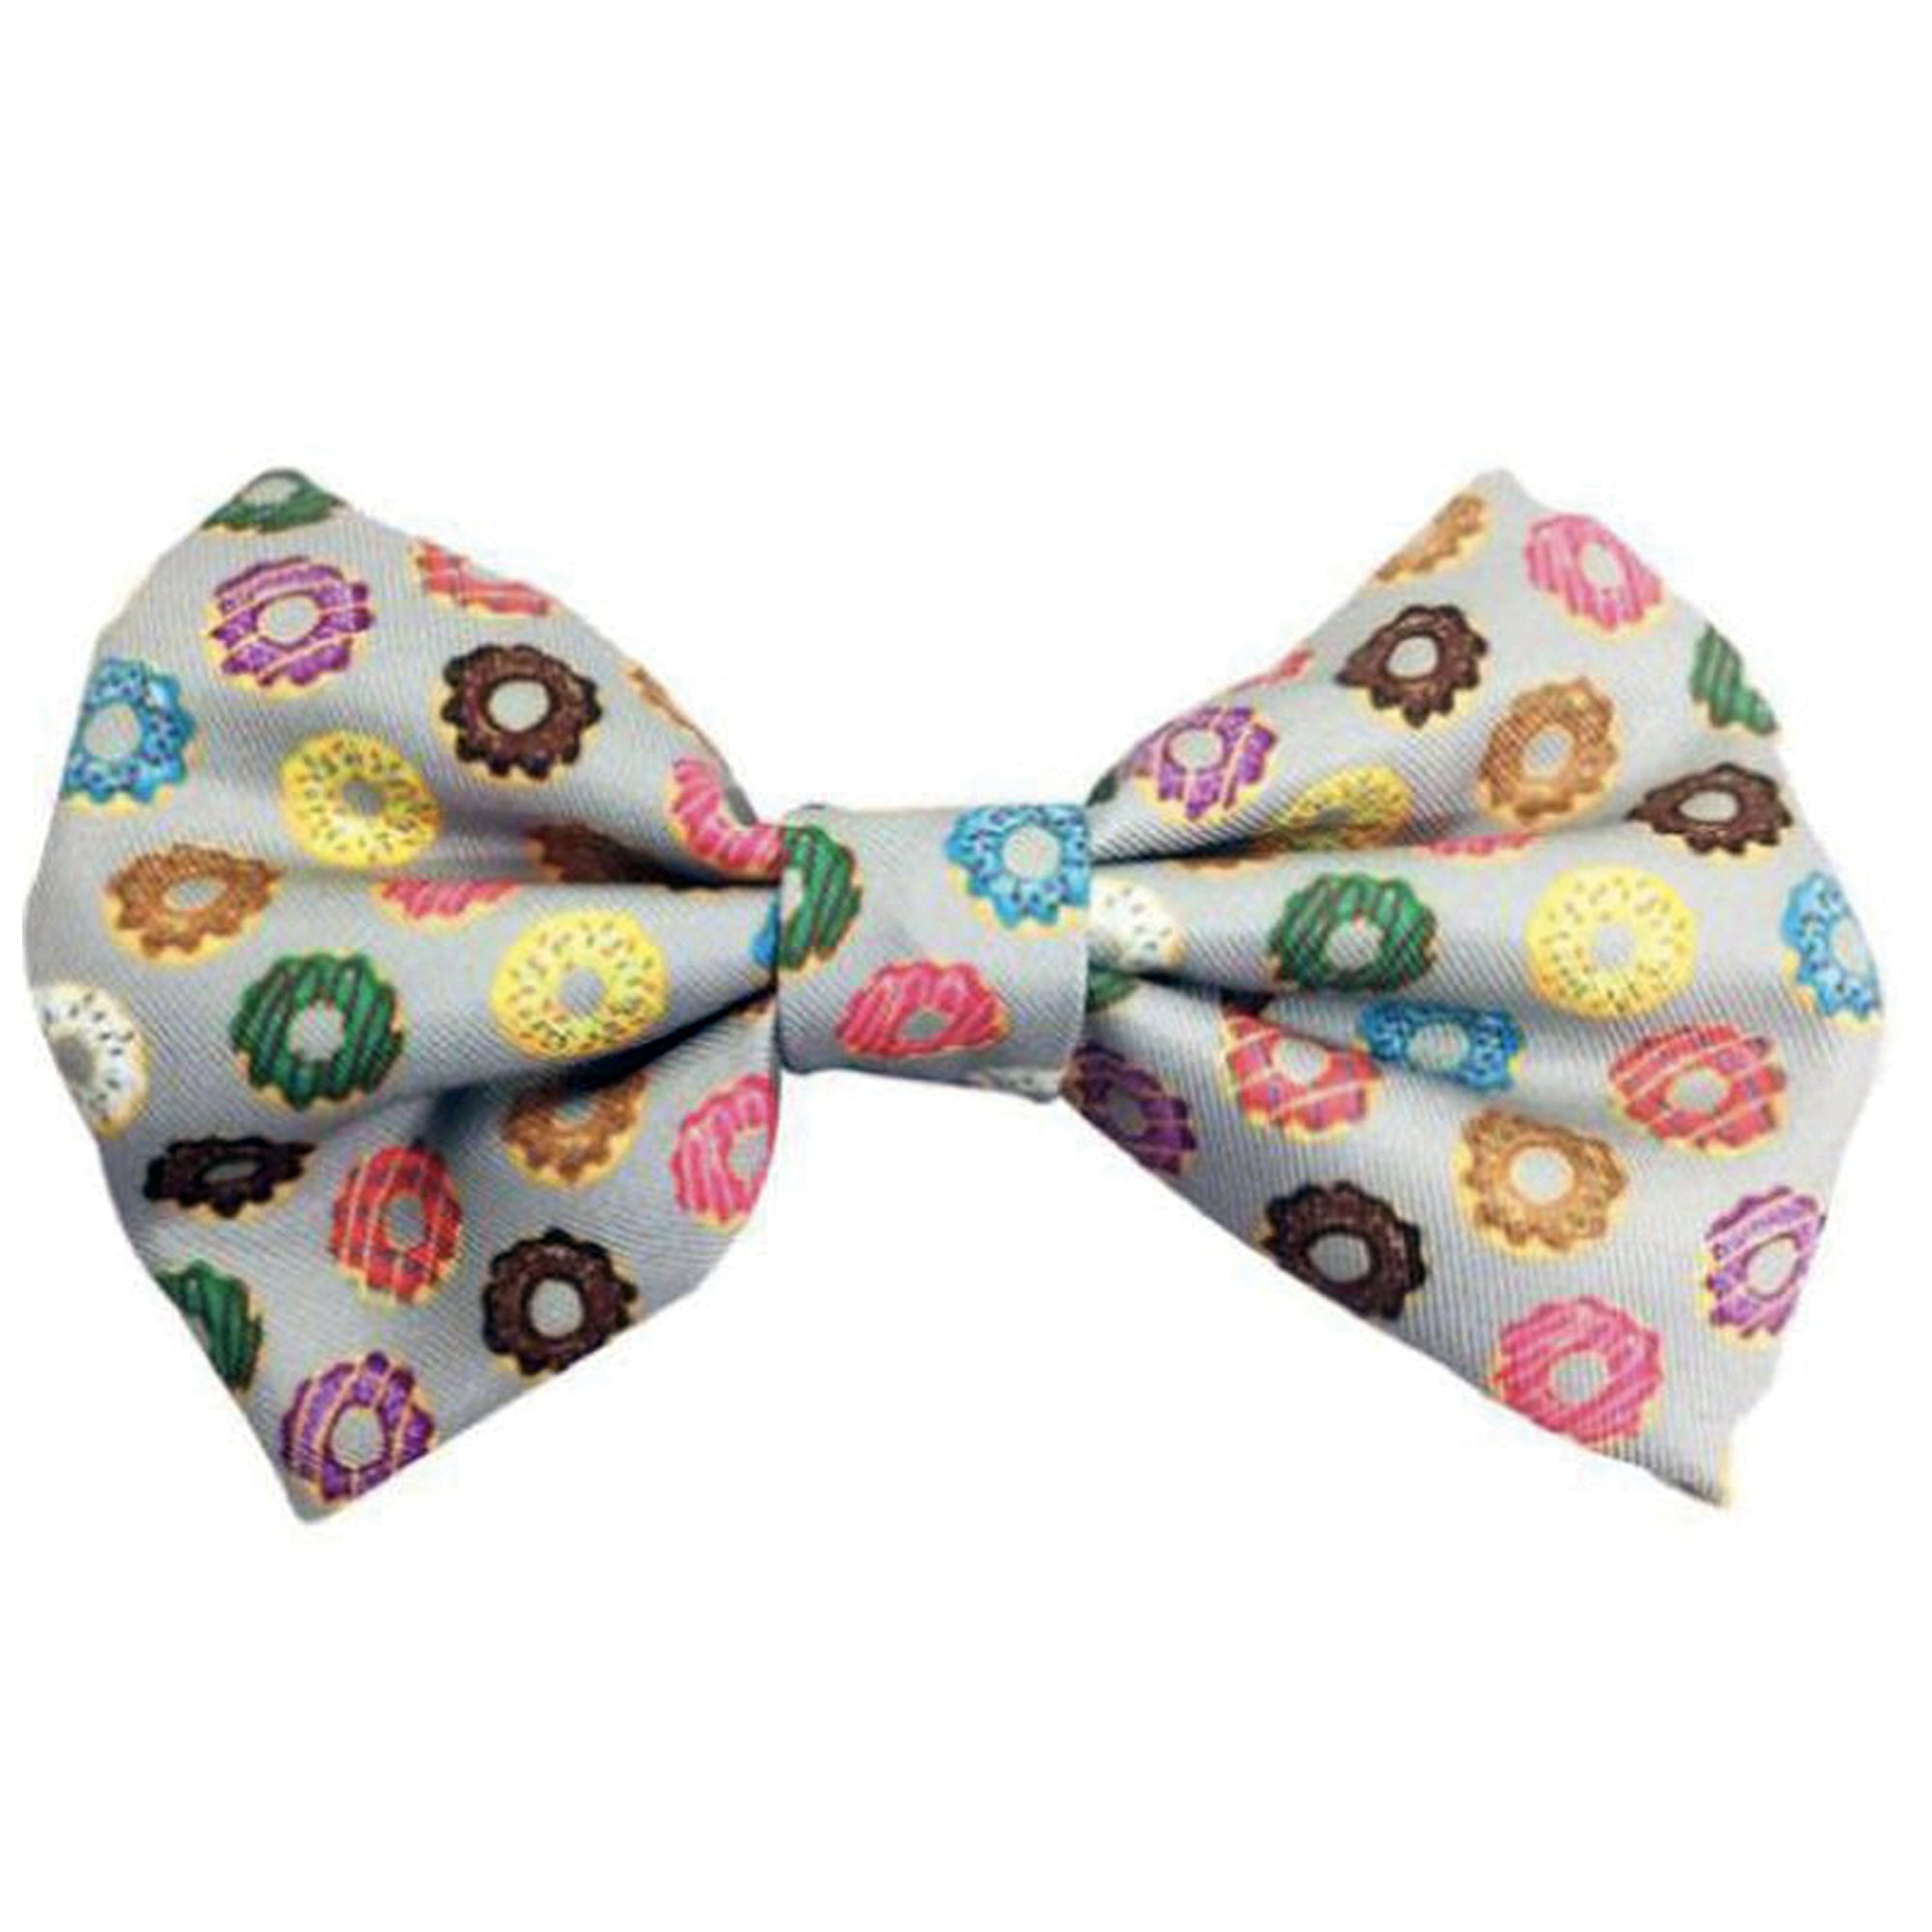 Frenchiestore dog Bowtie | Mint StarPup